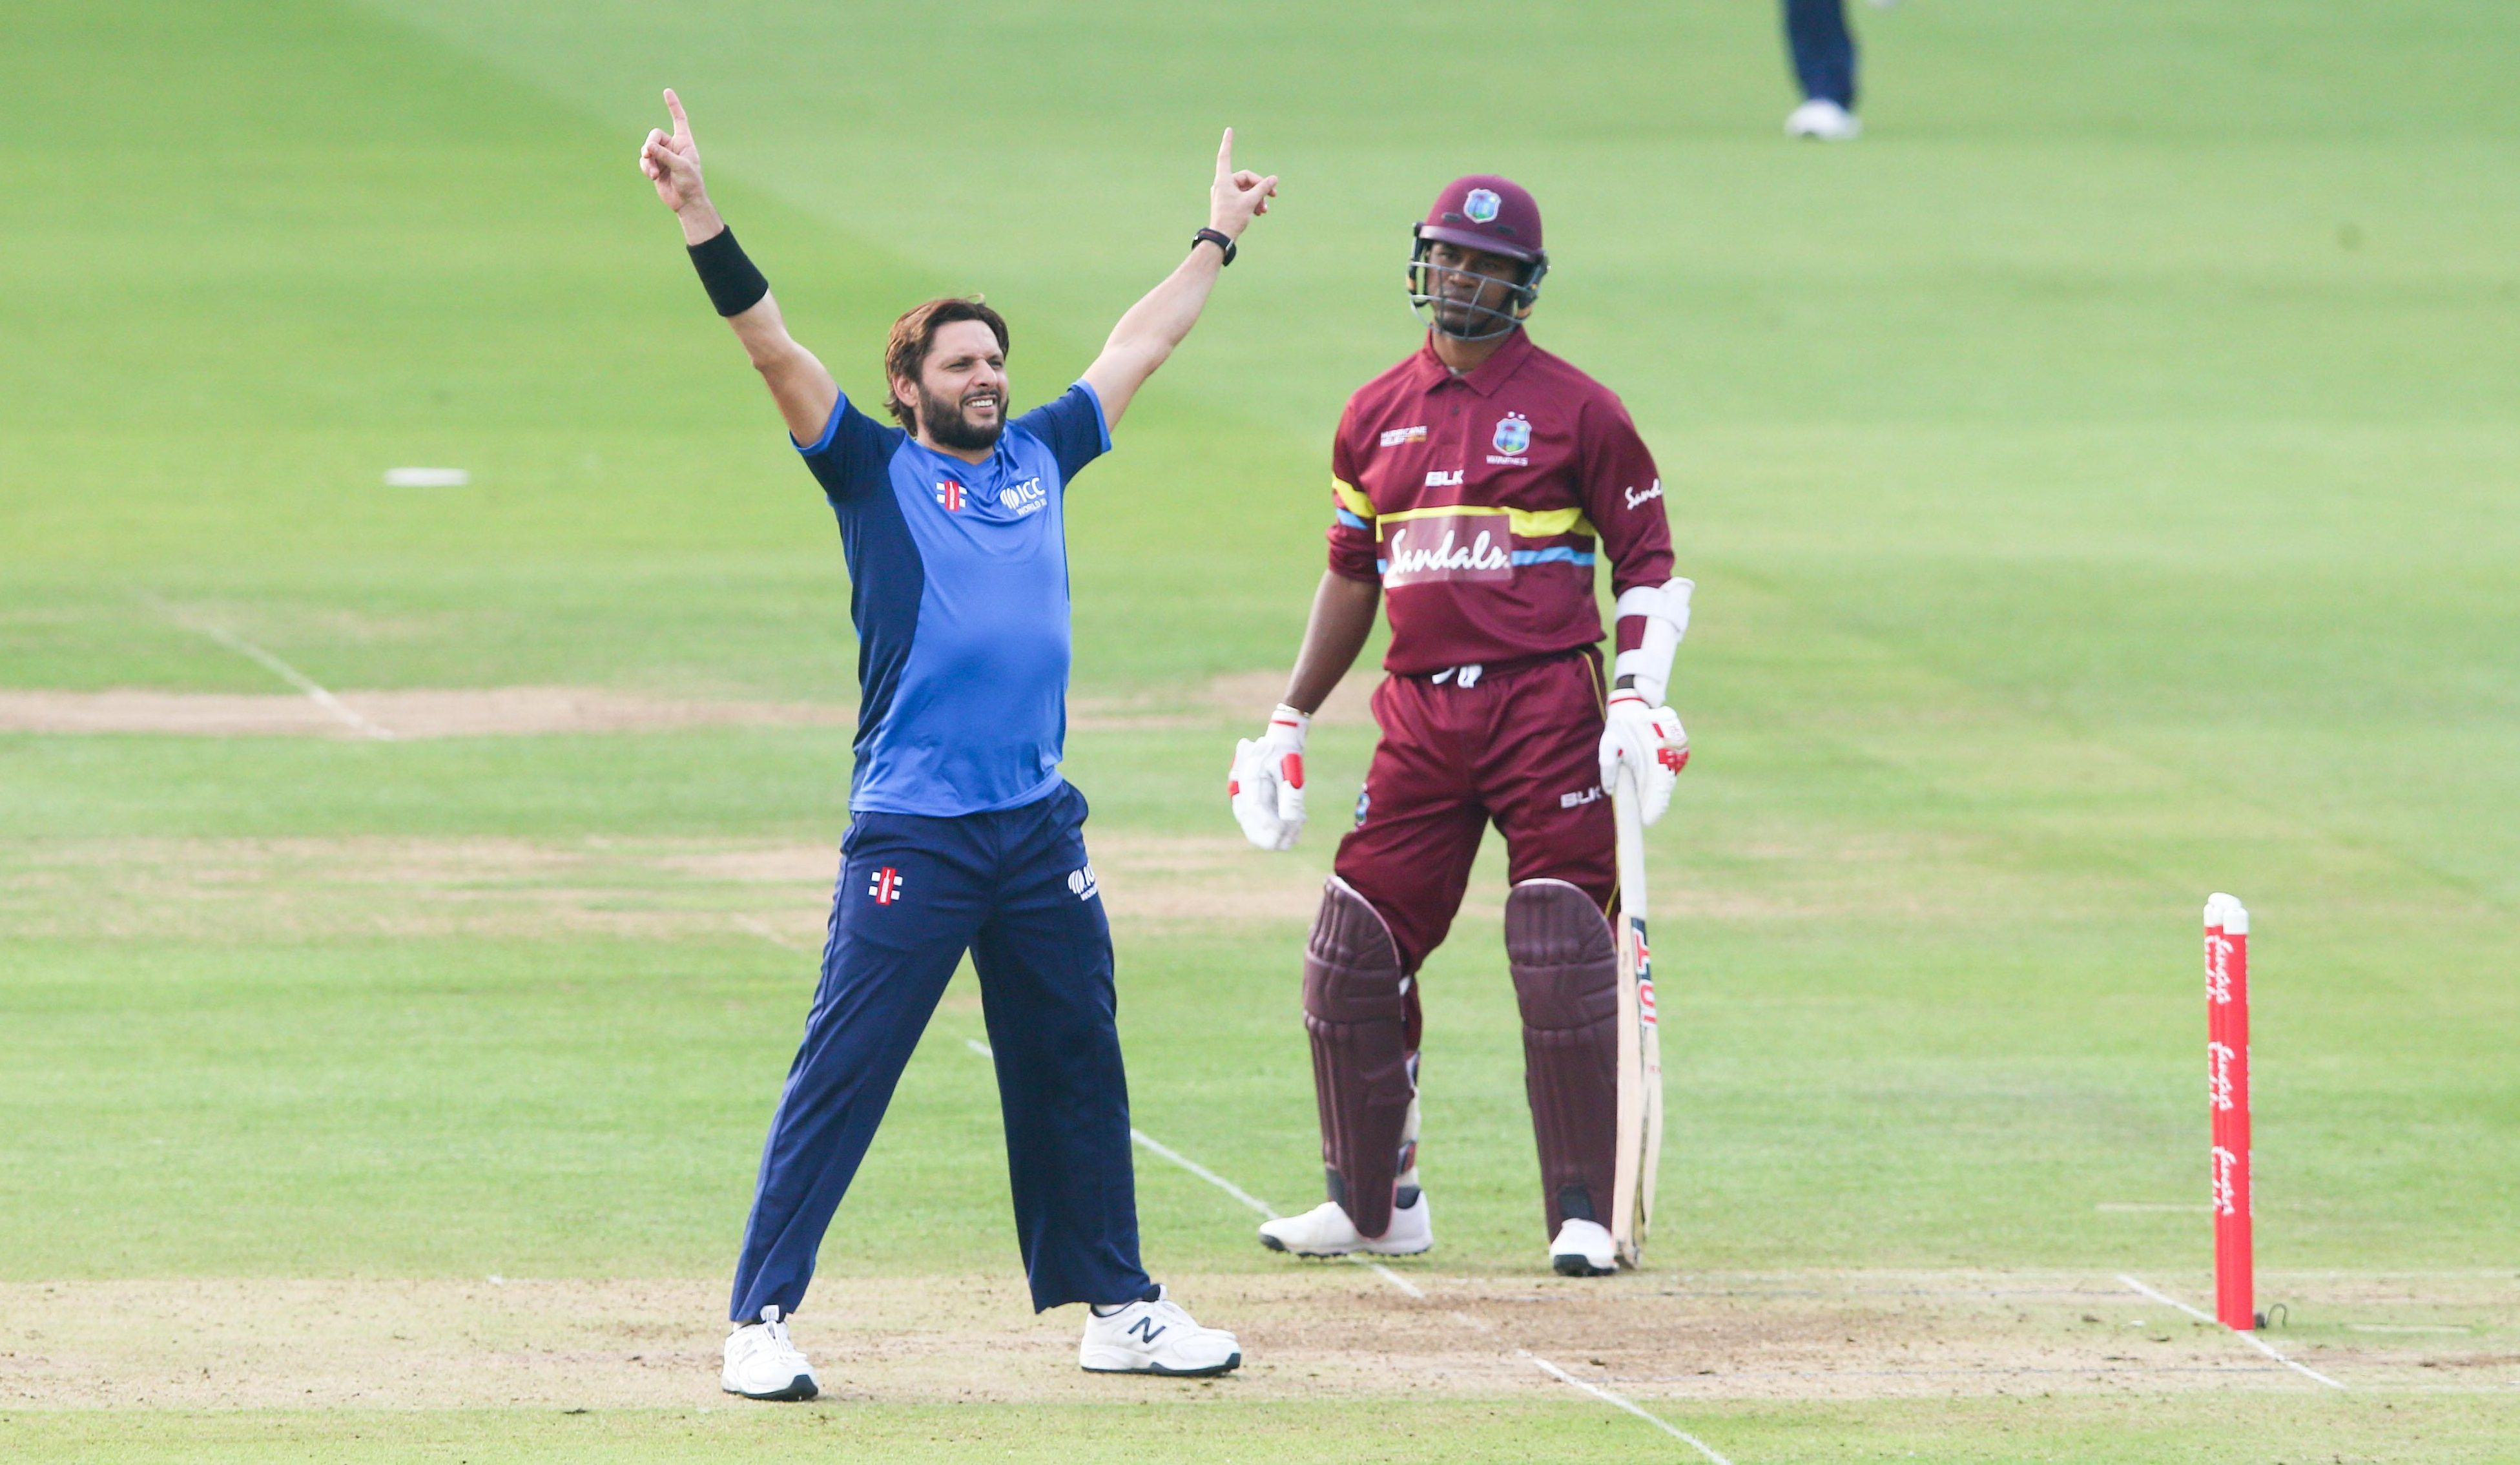 Pakistan legend Shahid Afridi celebrates a wicket for World XI in trademark fashion